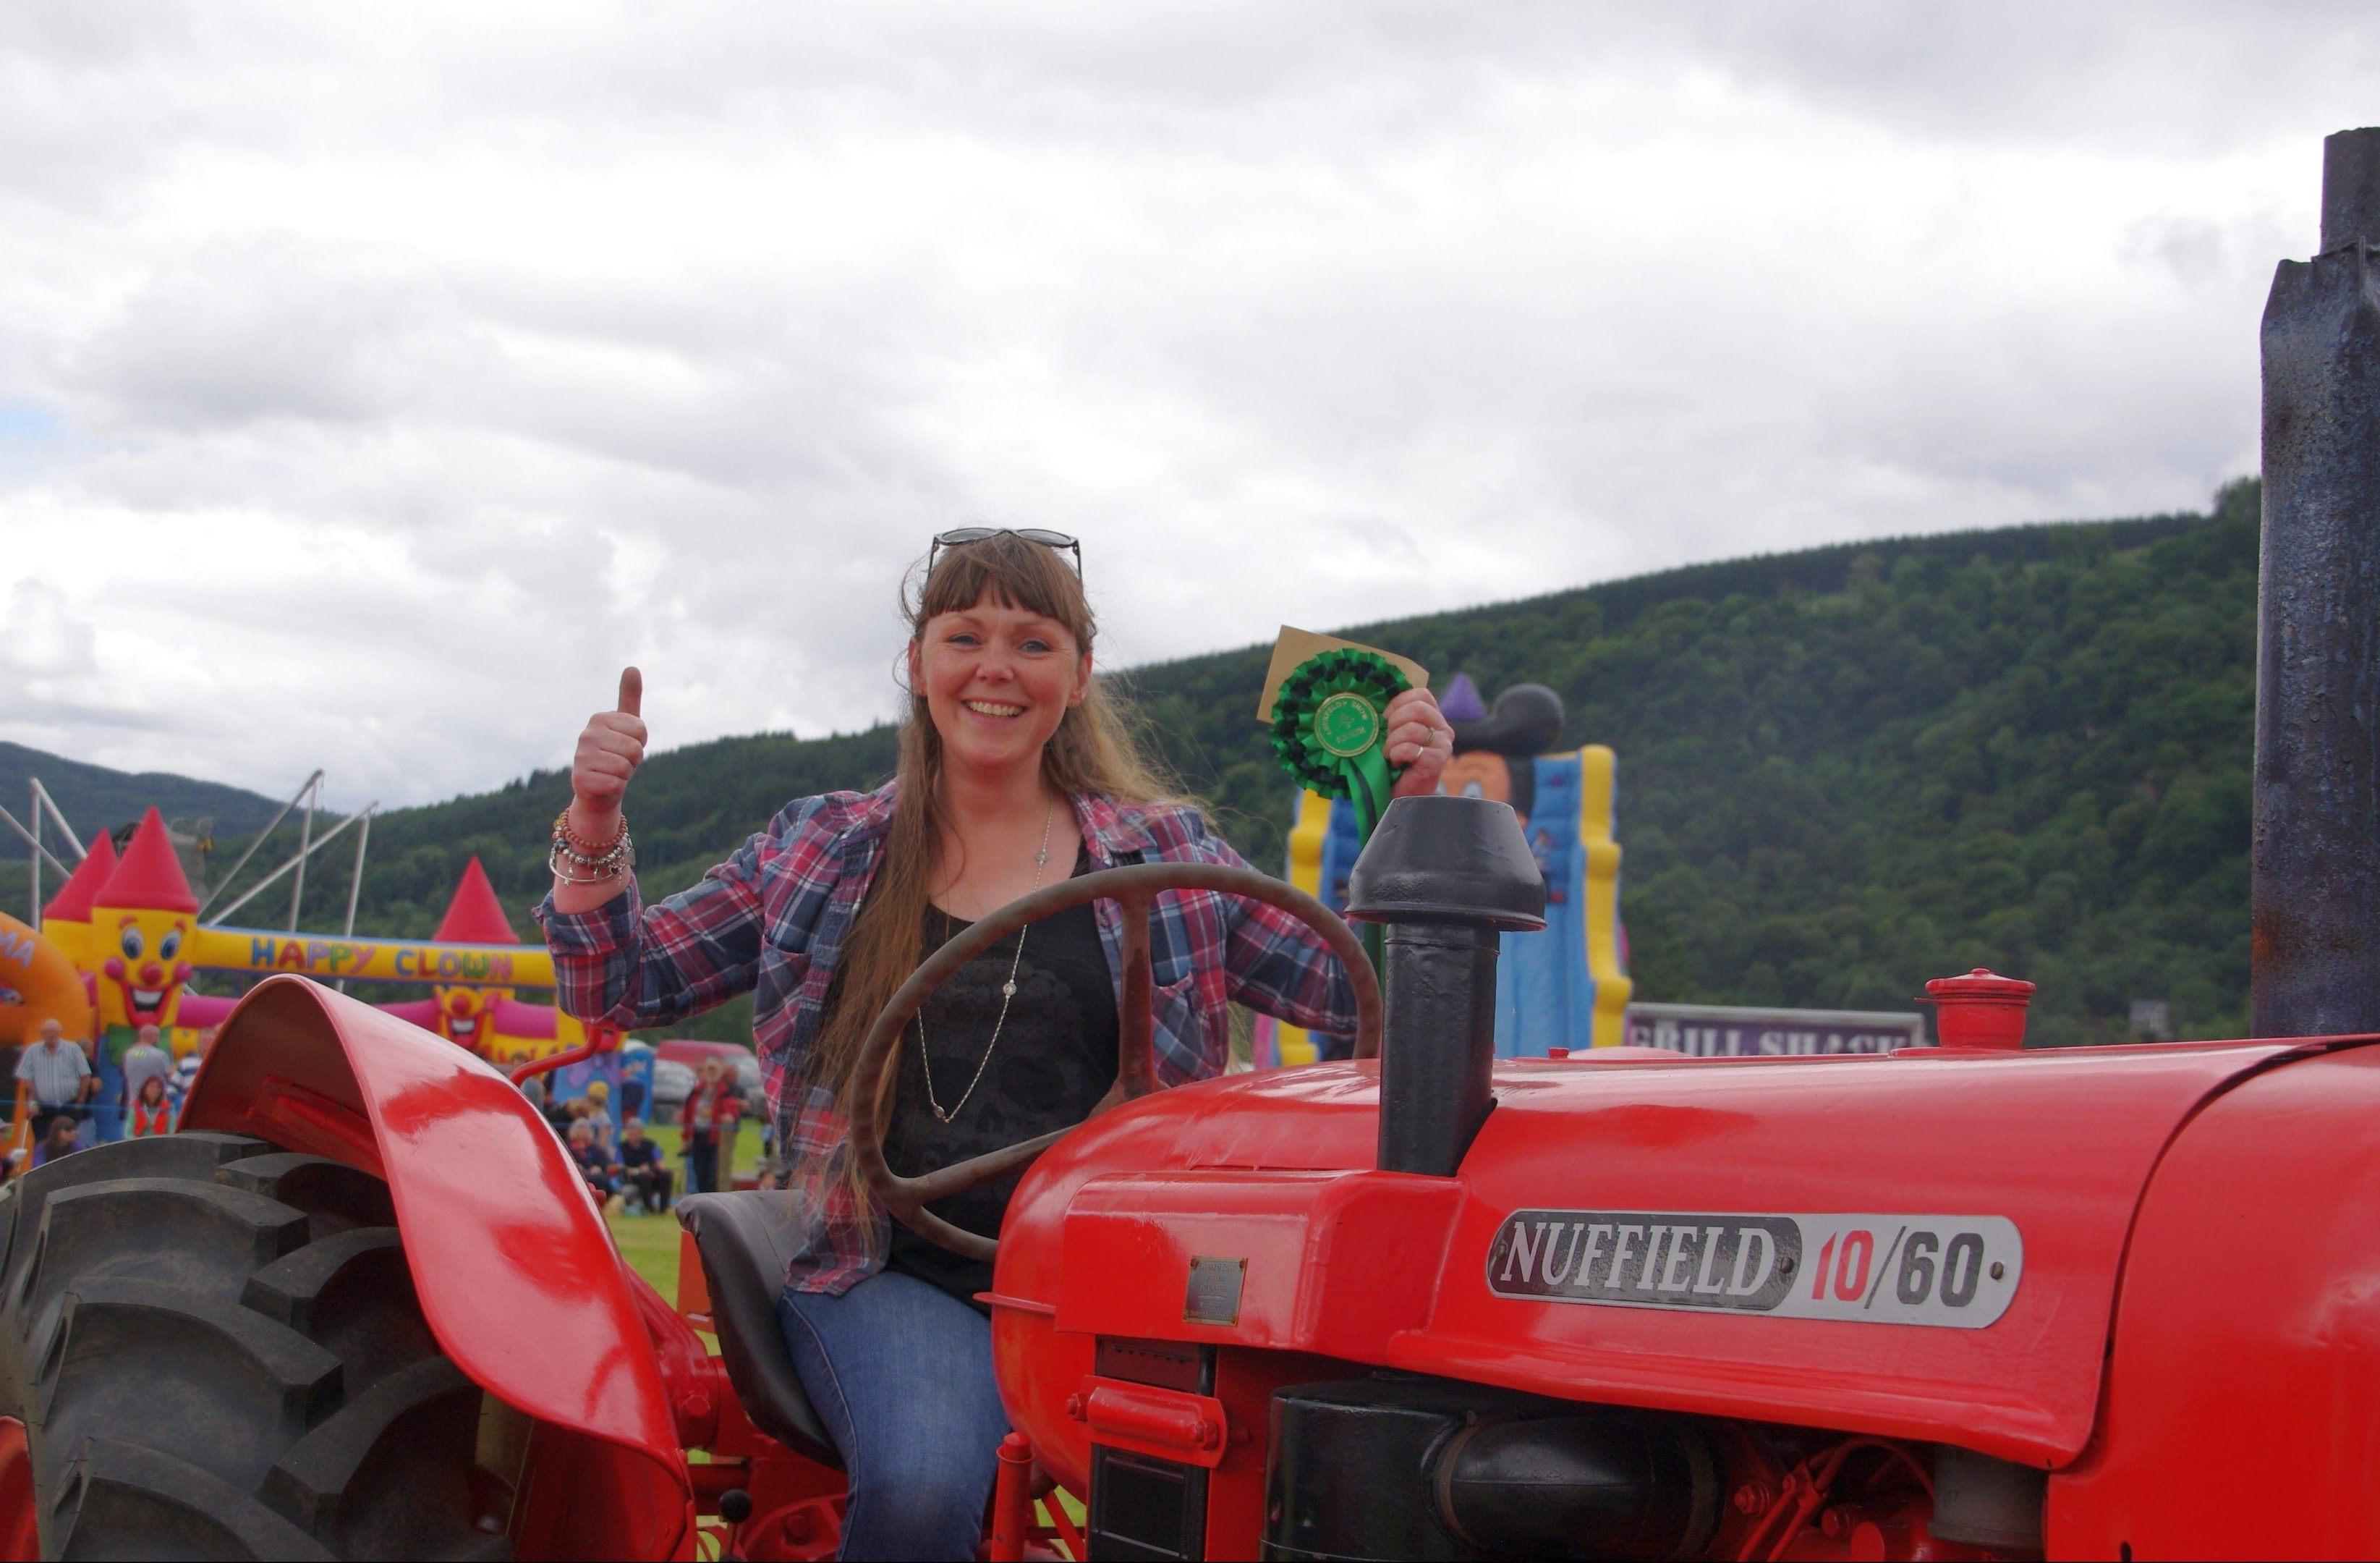 Claire Philip of Aberfeldy shows her delight in getting a fourth place rosette in the classic vintage tractor class.